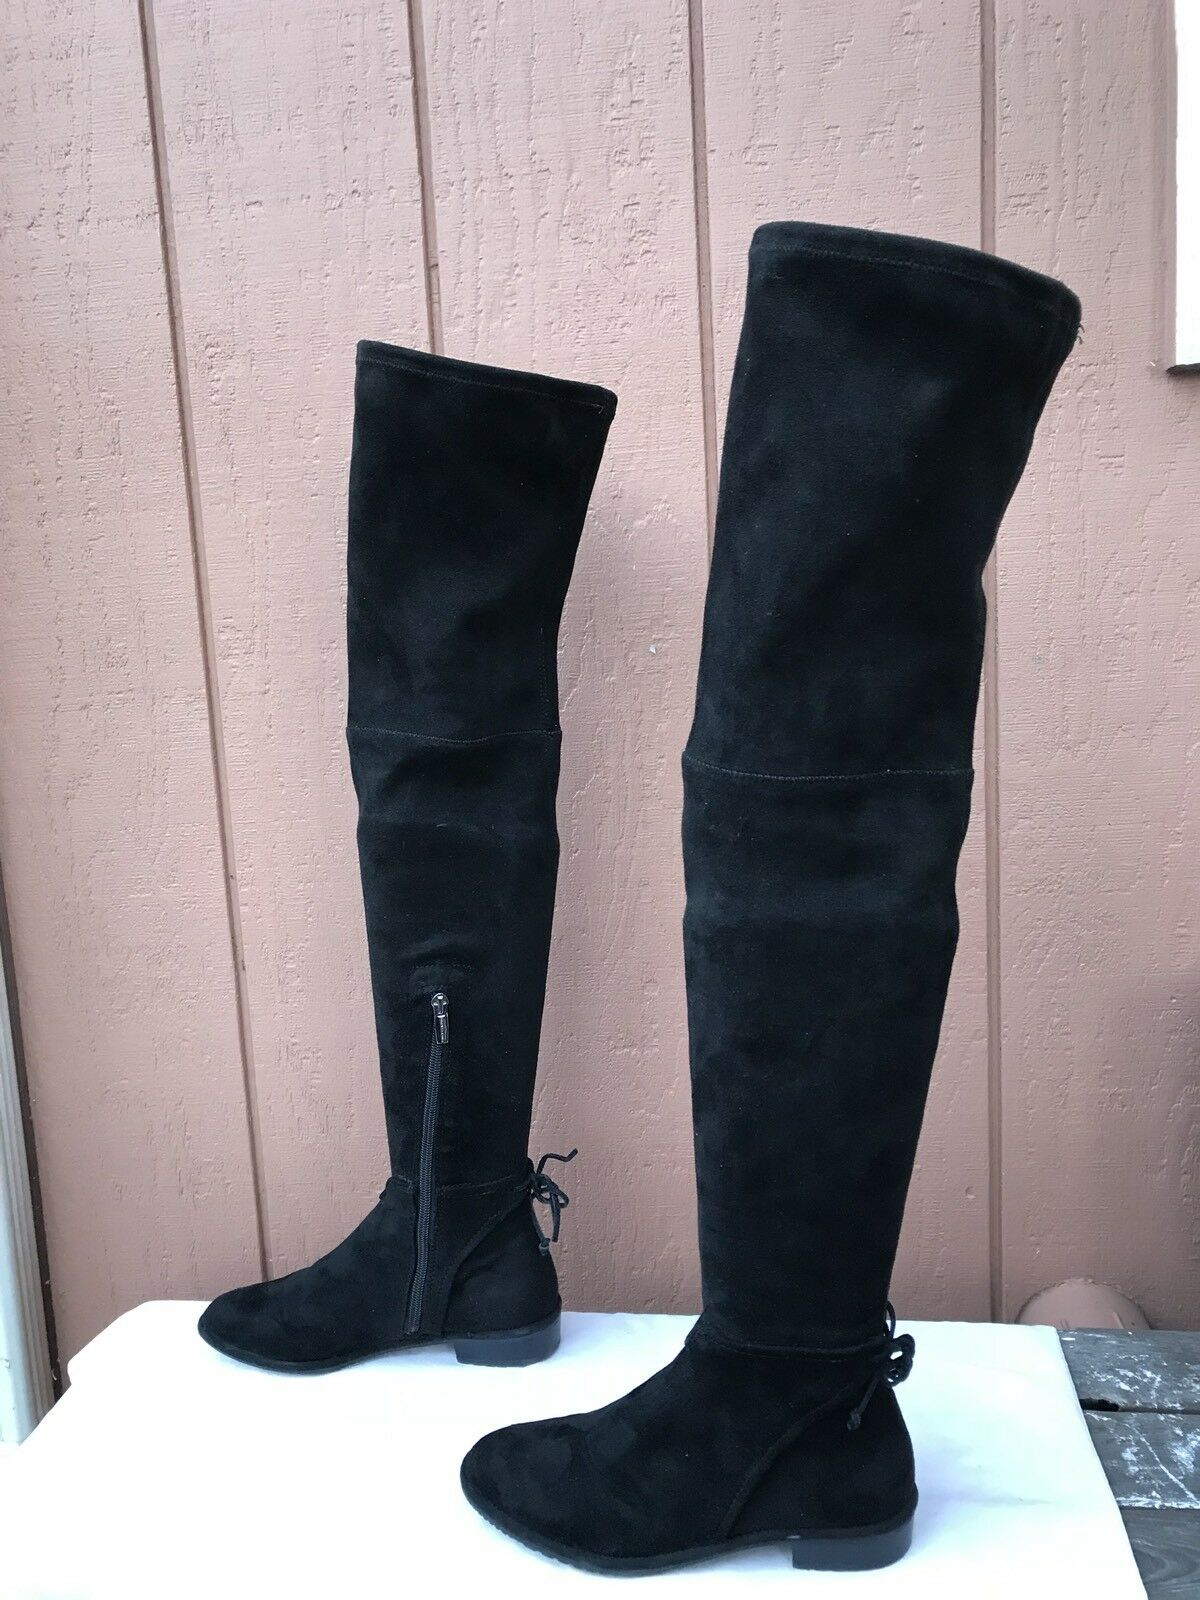 EUC  198 VINCE CAMUTO CAMUTO CAMUTO 'Caddea' Over the Knee Black Boots US 6M EUR 36 bcd5fc